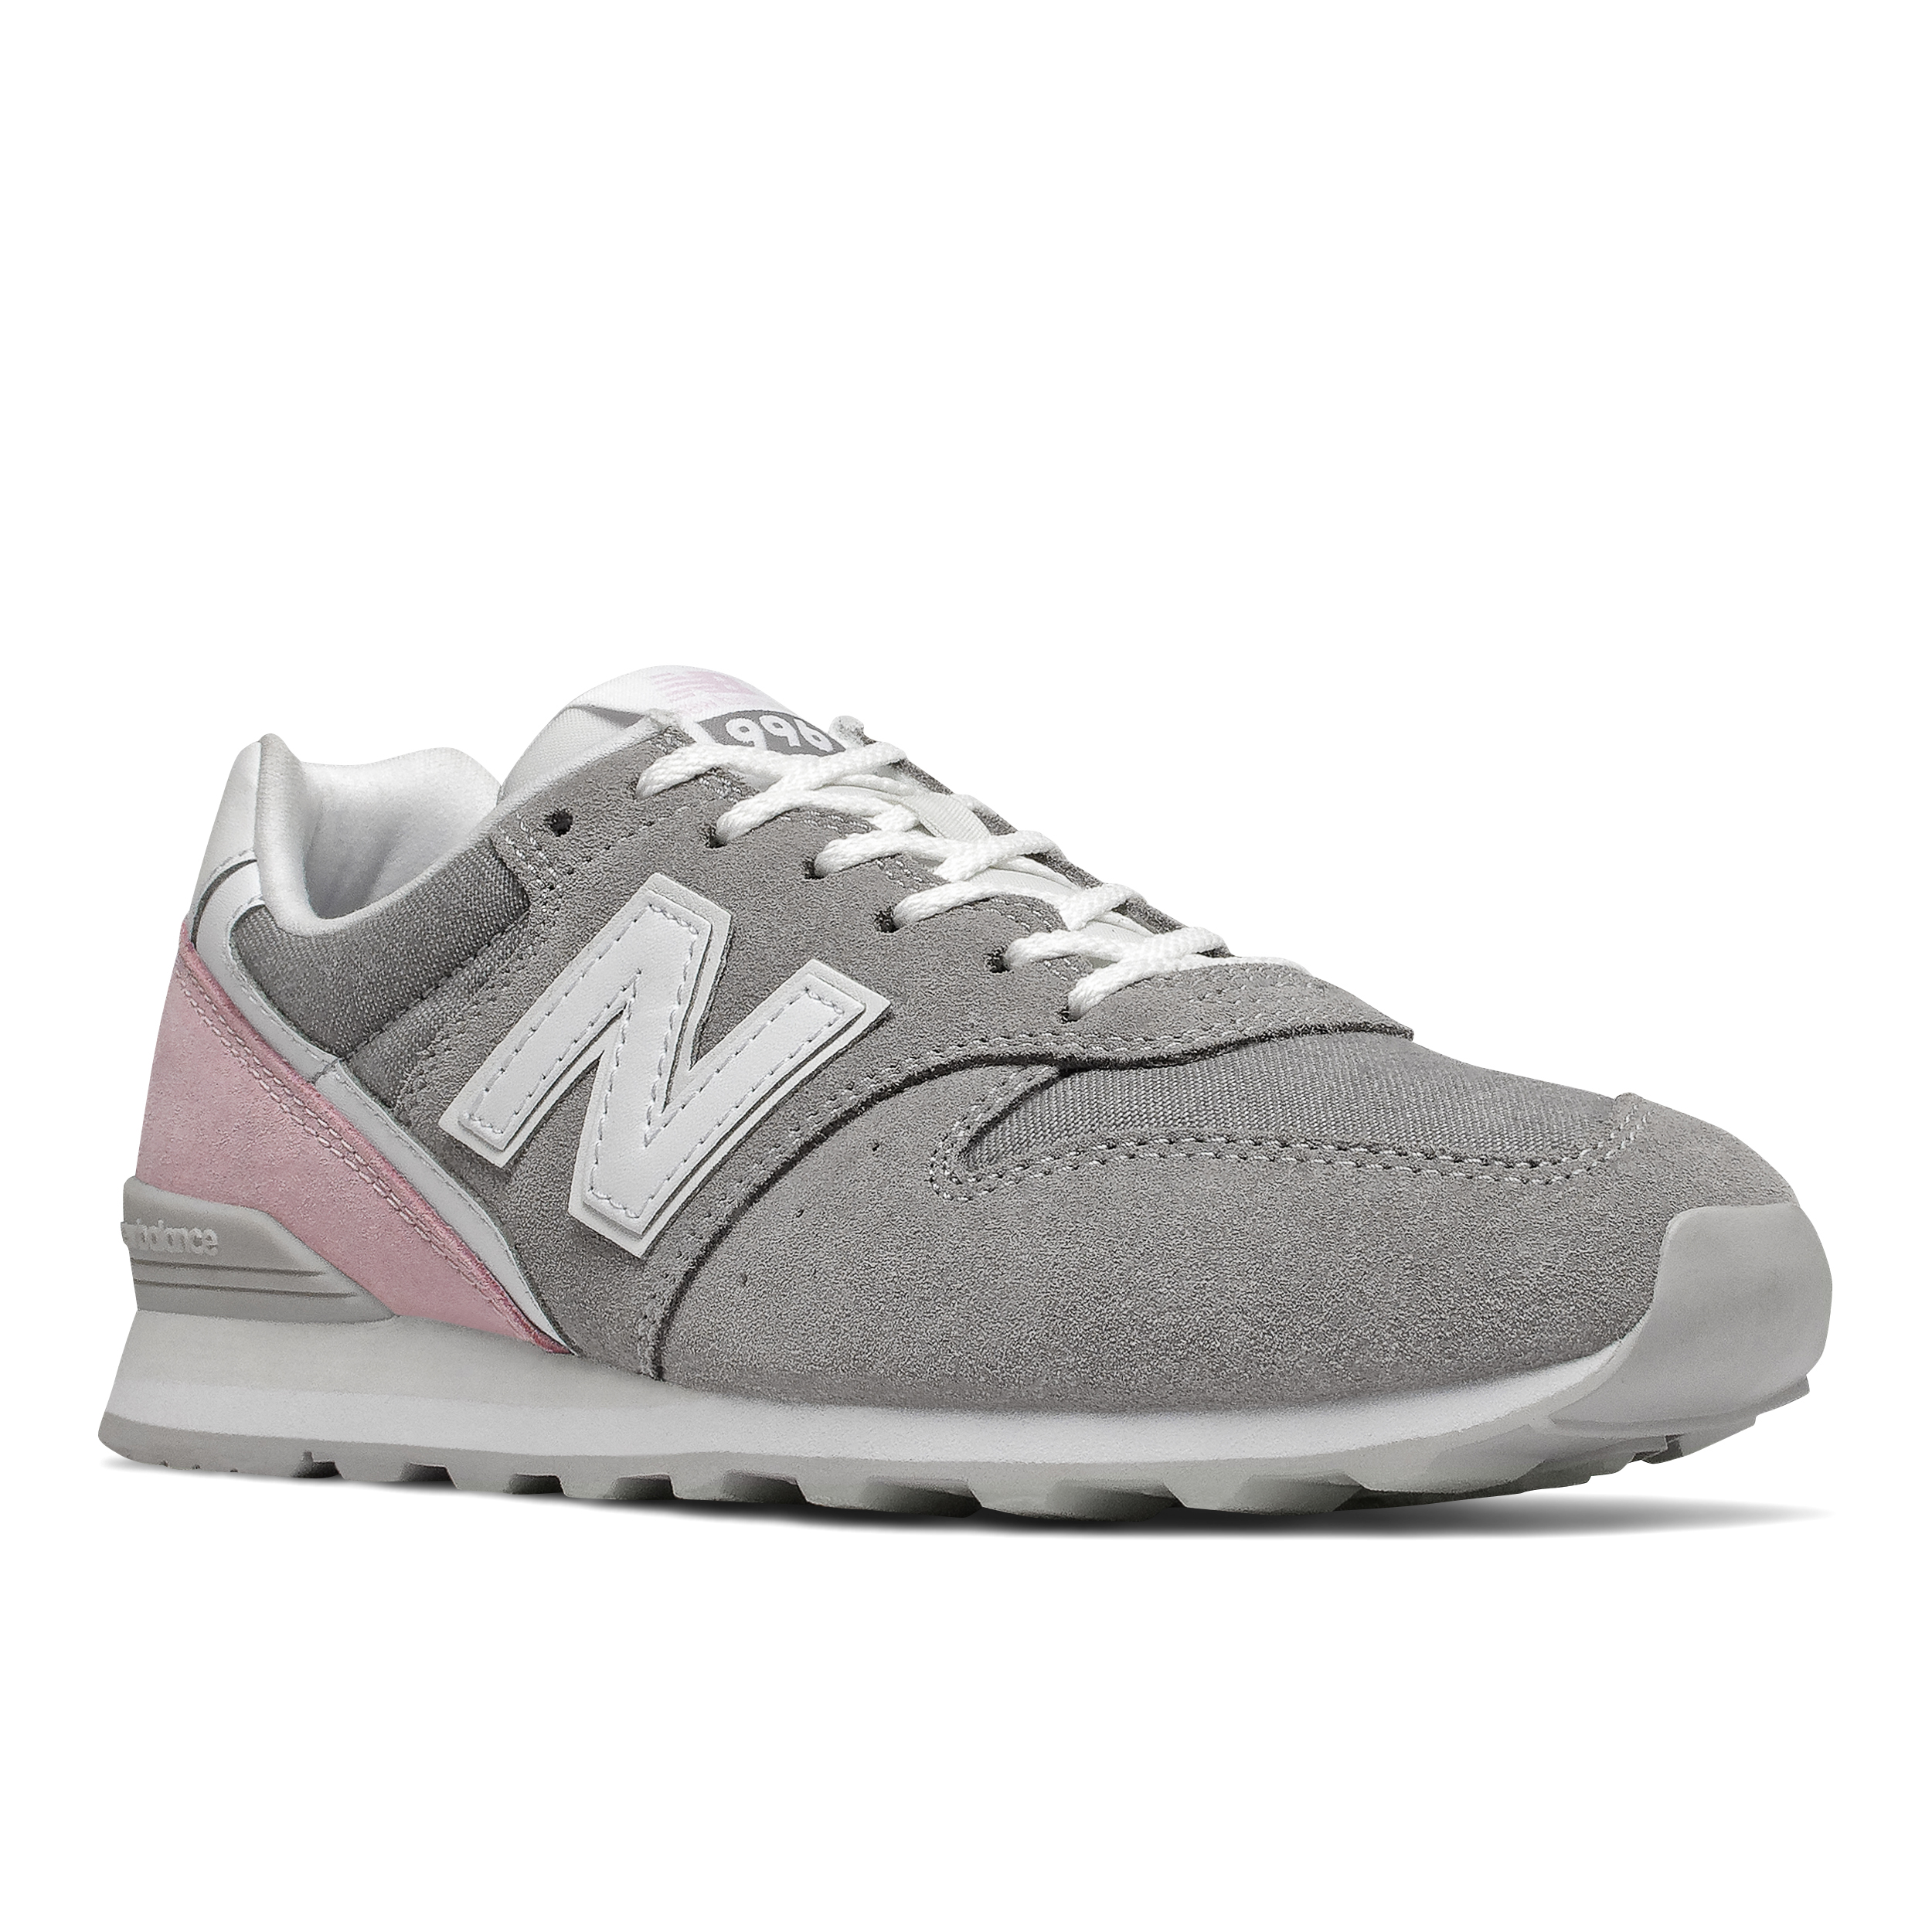 New Balance 996 V2 Shoes Women's